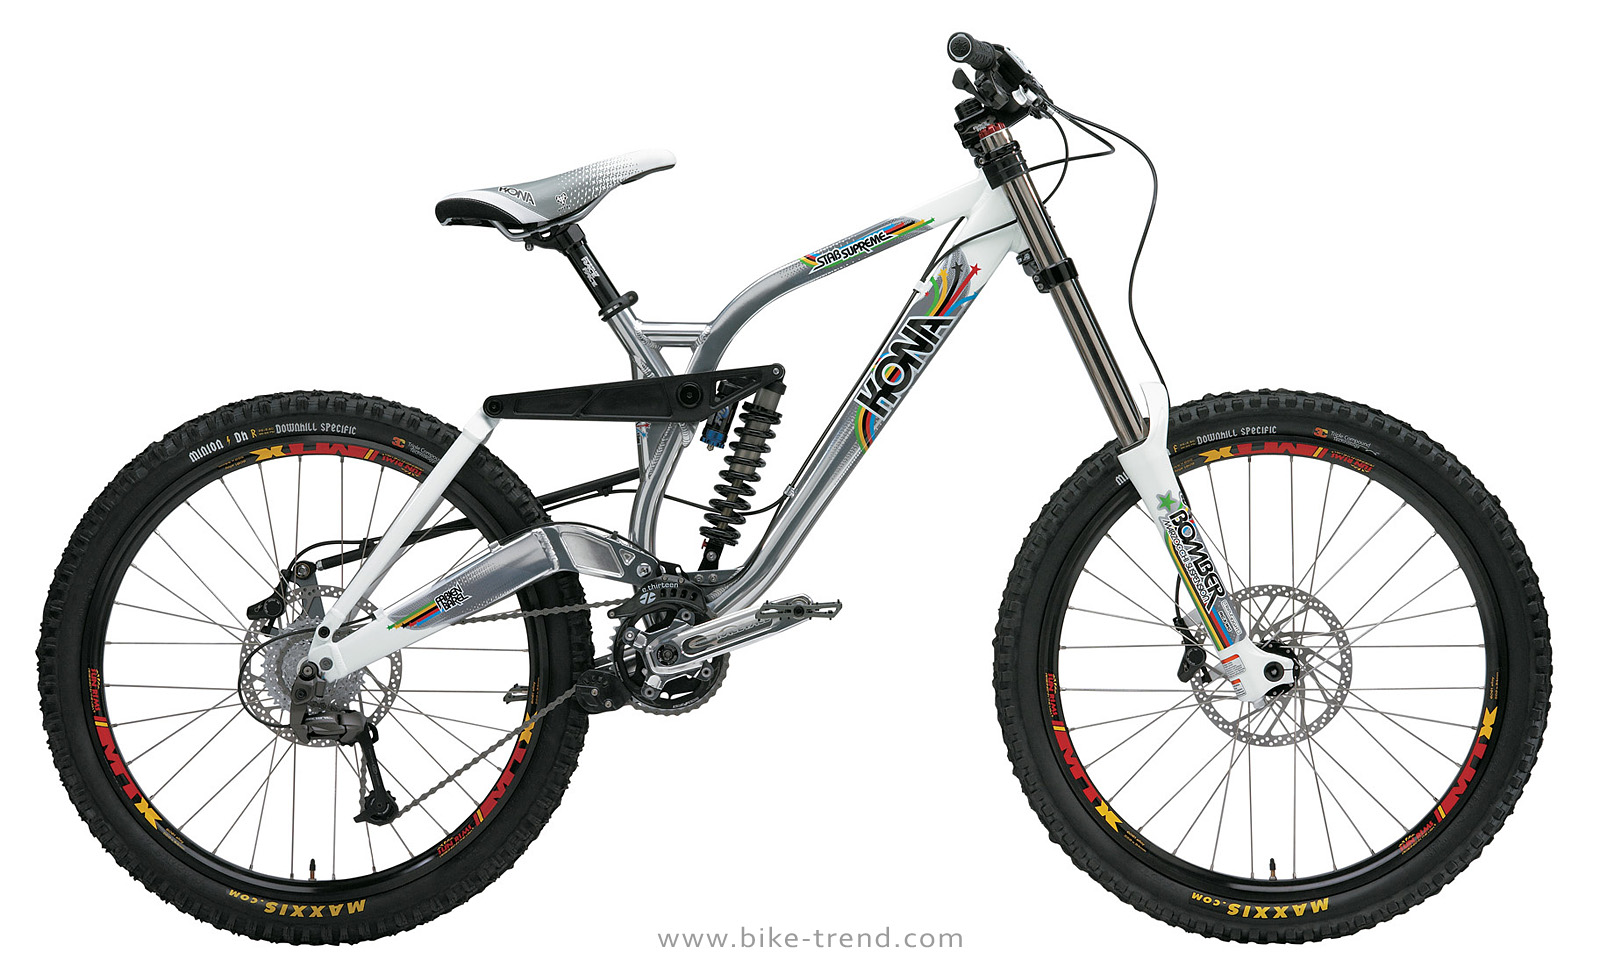 Kona Downhill Mountain Bikes 1600 x 974 · 315 kB · jpeg